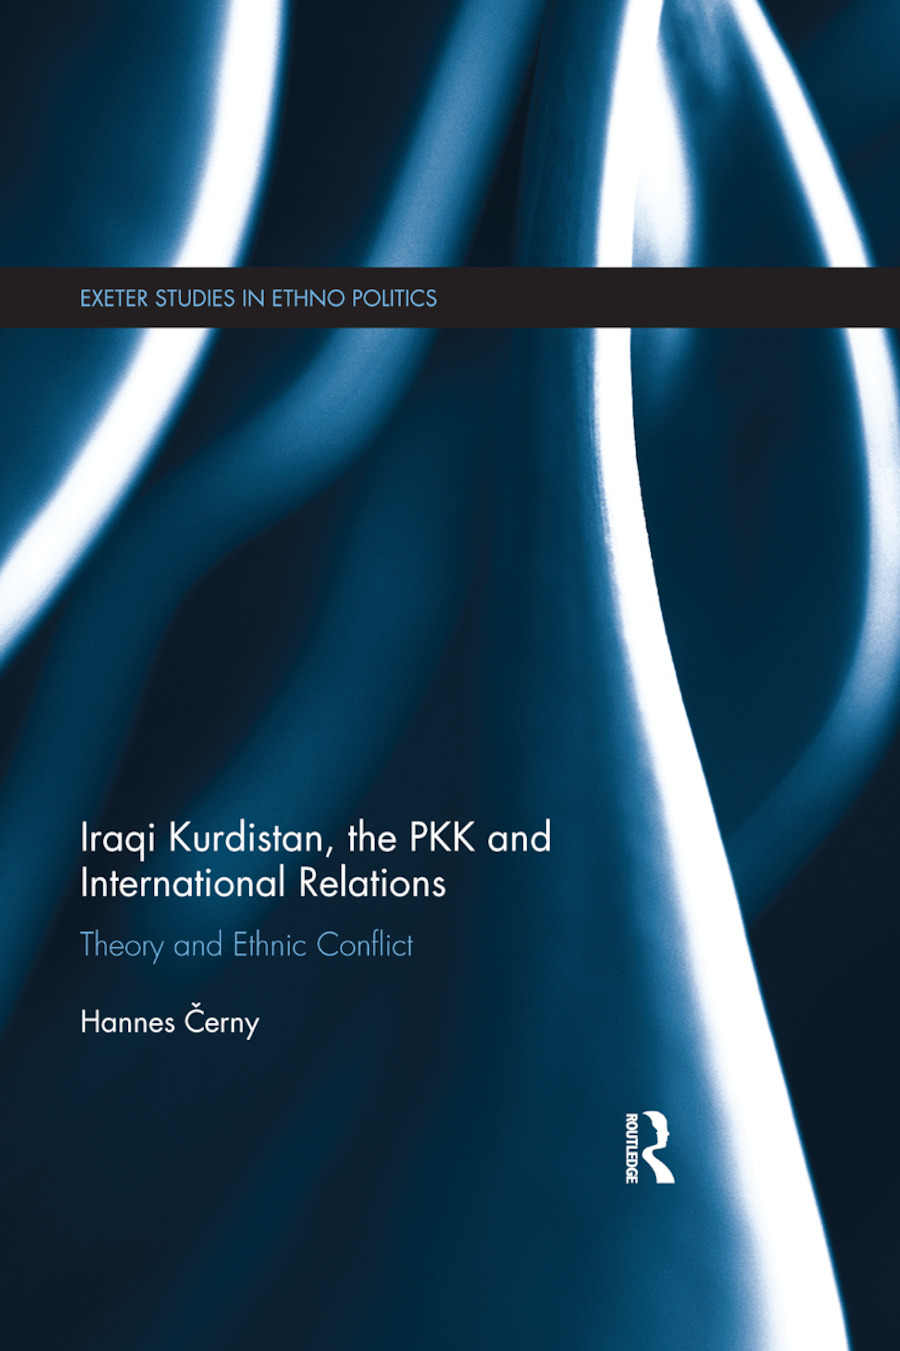 Iraqi Kurdistan, the PKK and International Relations: Theory and Ethnic Conflict book cover